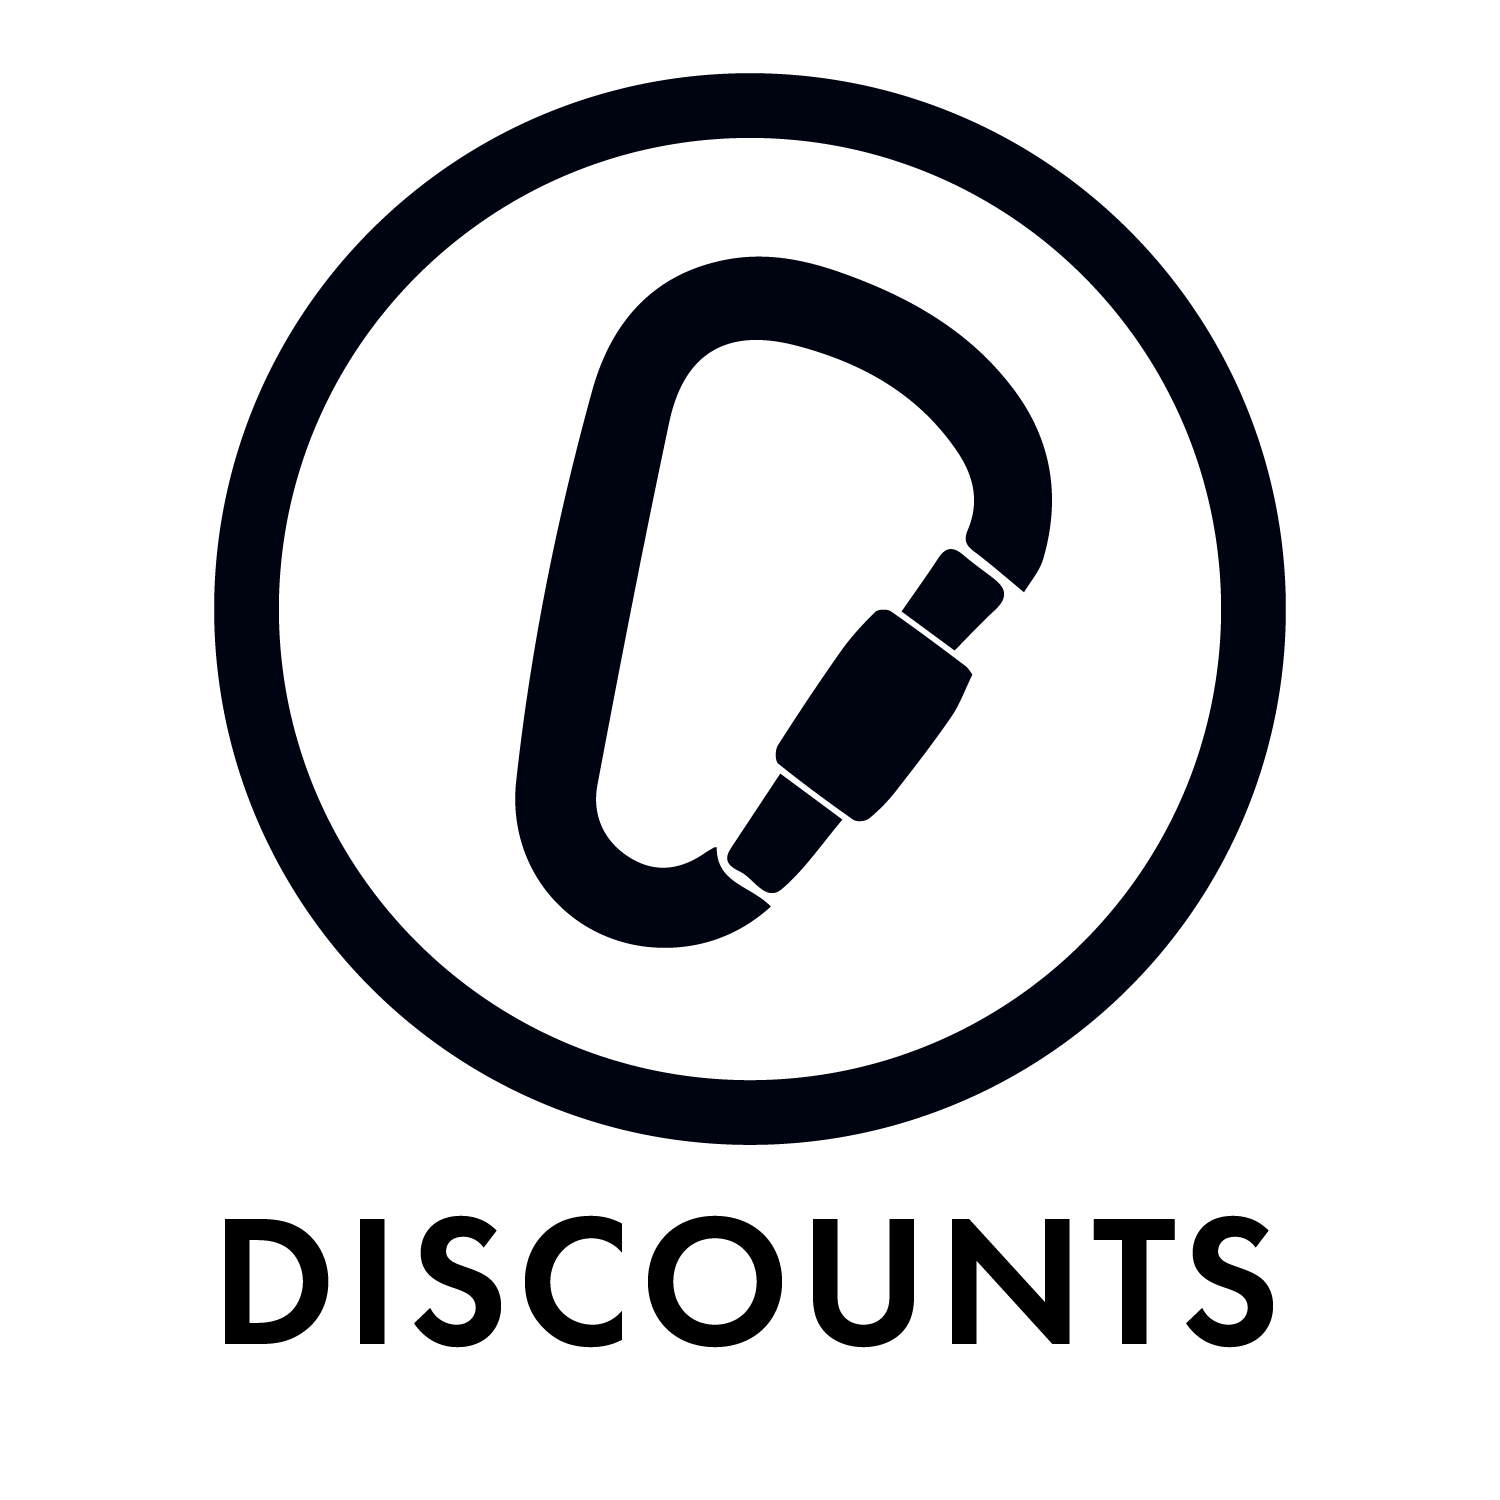 Icons_AW_Discounts.jpg